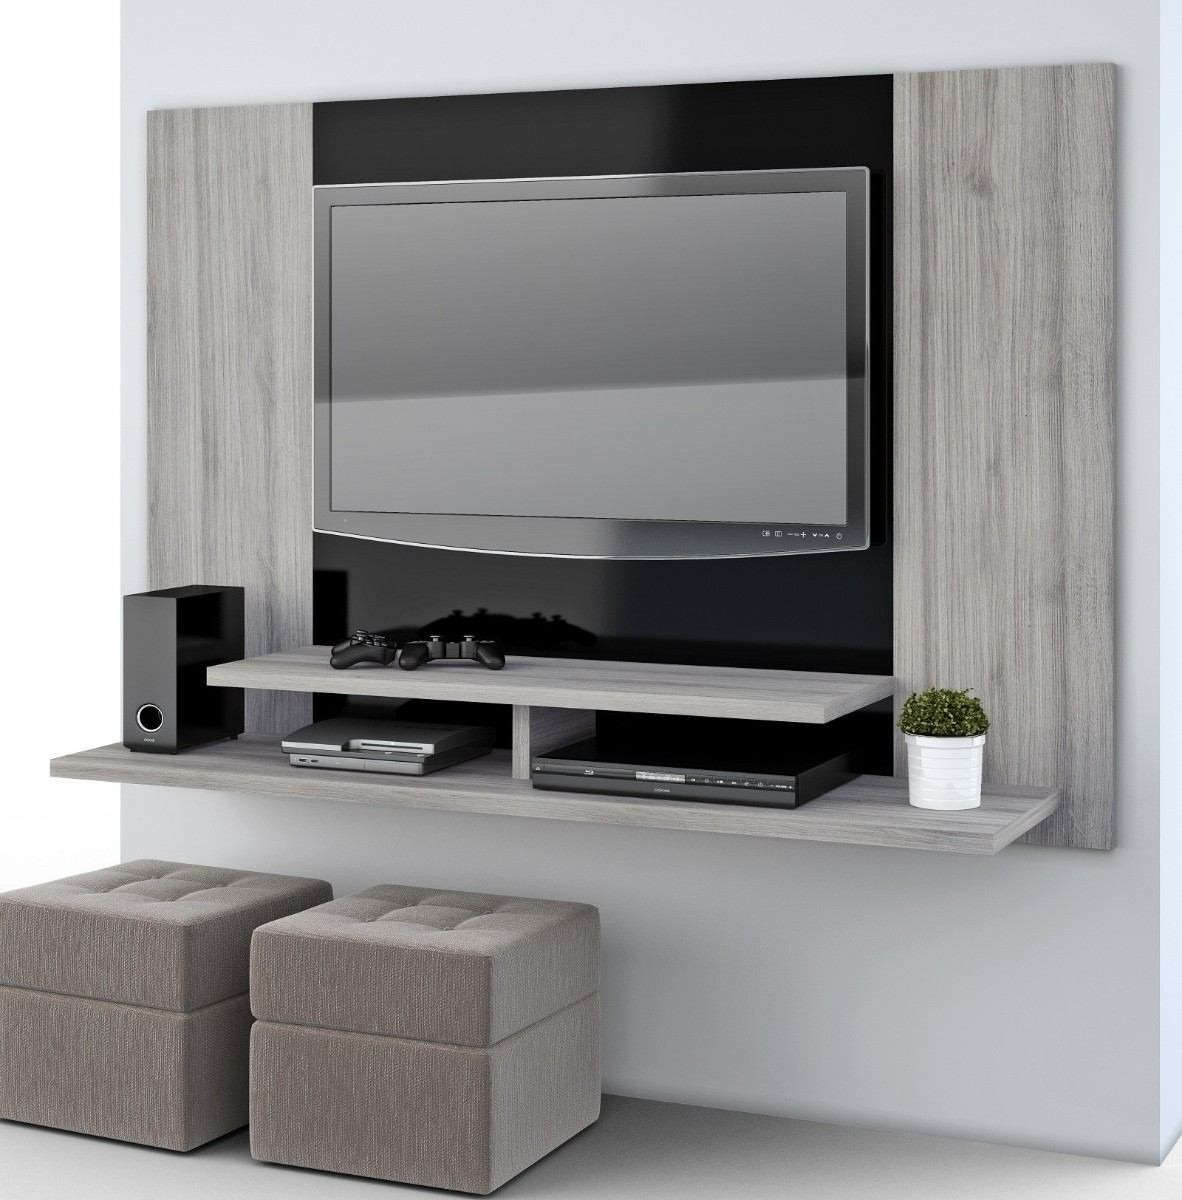 Mueble flotante para tv moderno ref manhatan for Mueble tv moderno